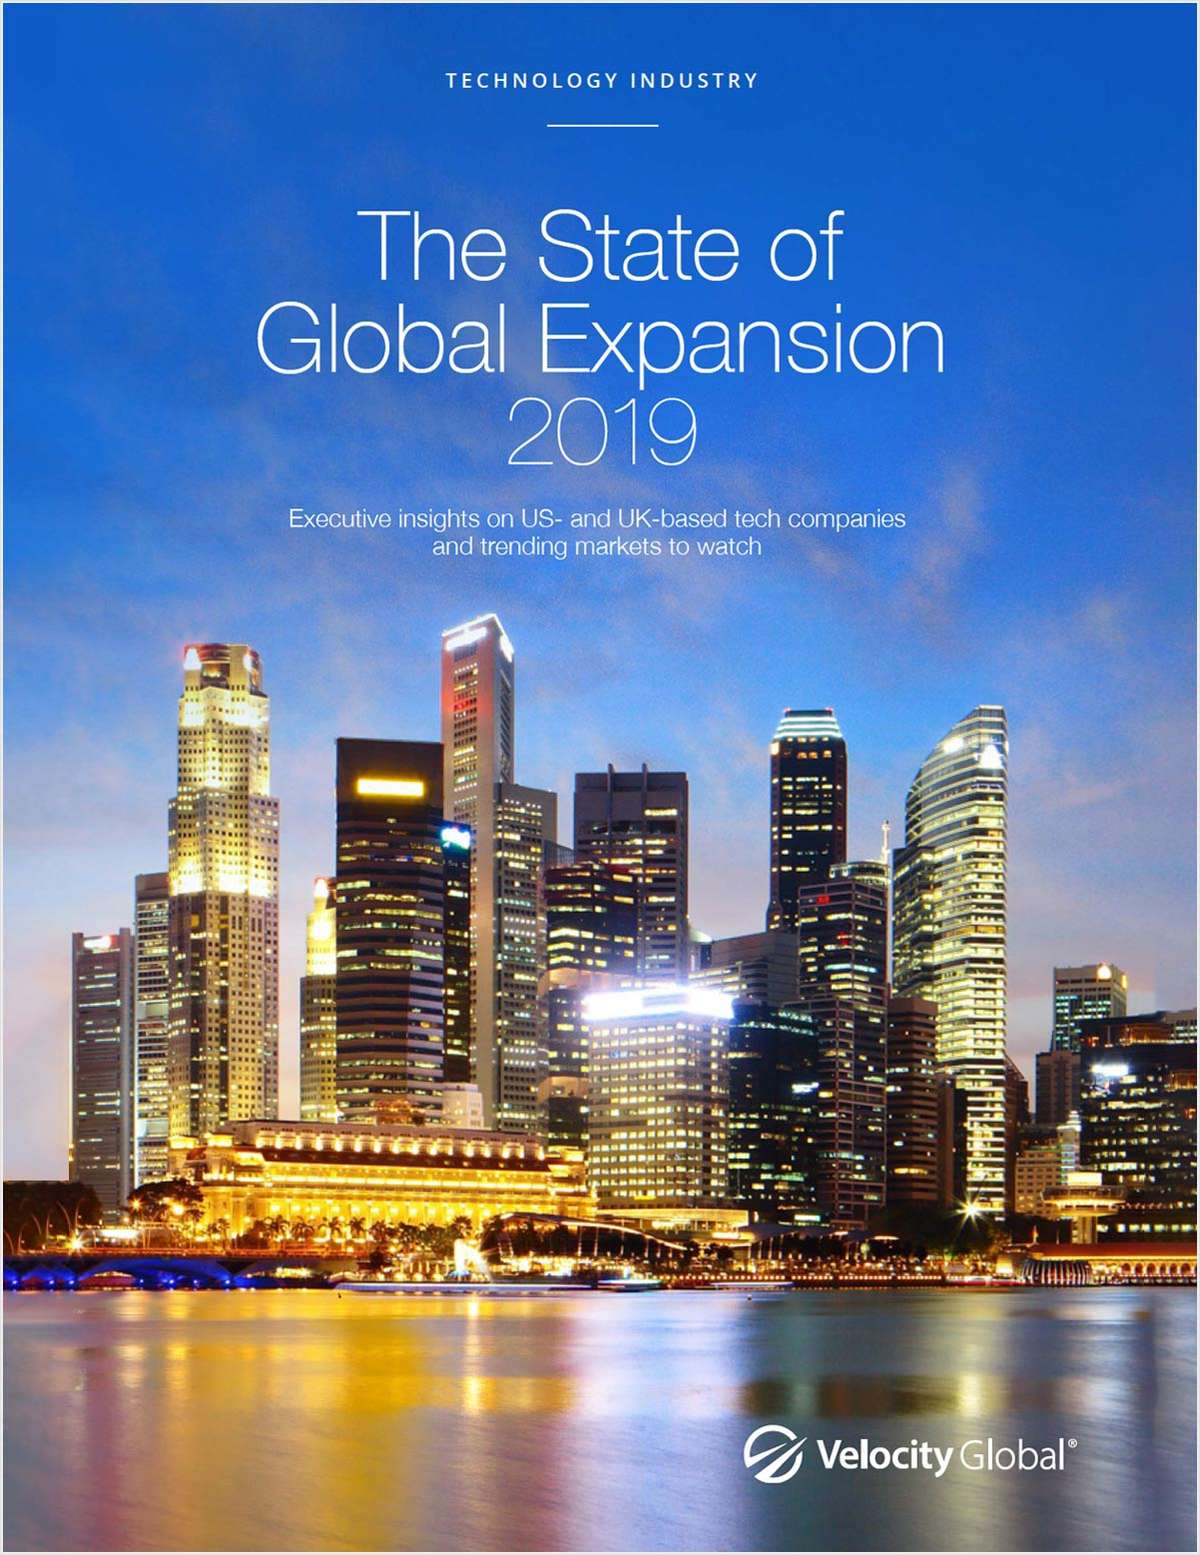 The Ultimate Guide to Global Expansion